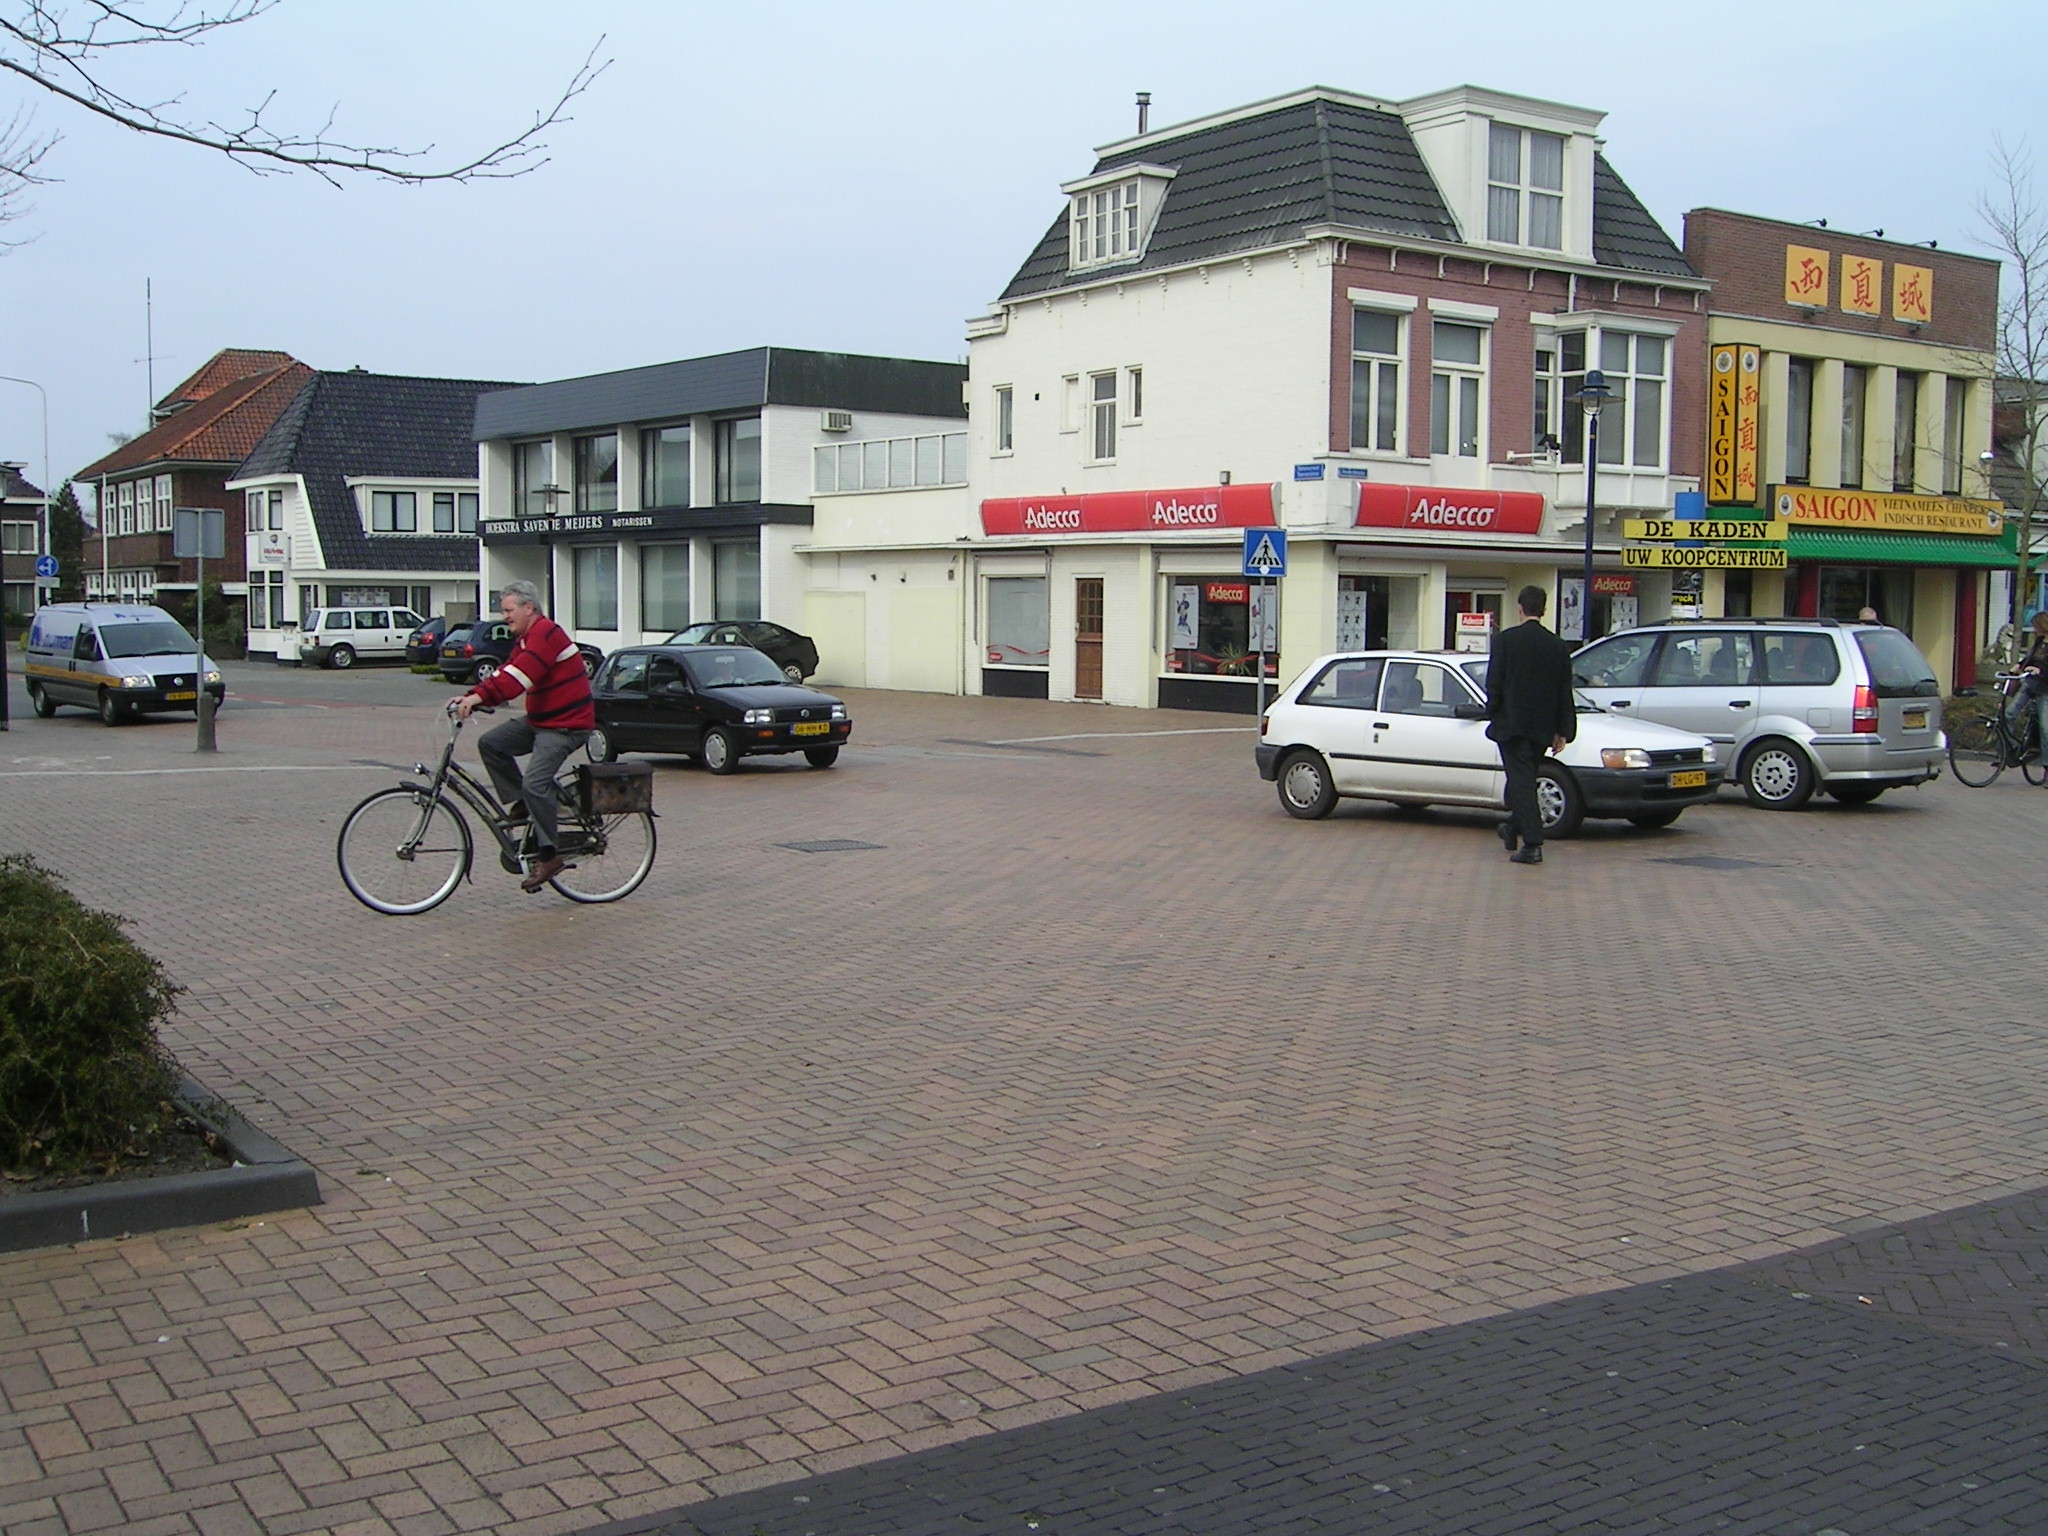 A shared space in Drachten. Keep to your side, yield for things in front of you, drive slow, and you will be fine.